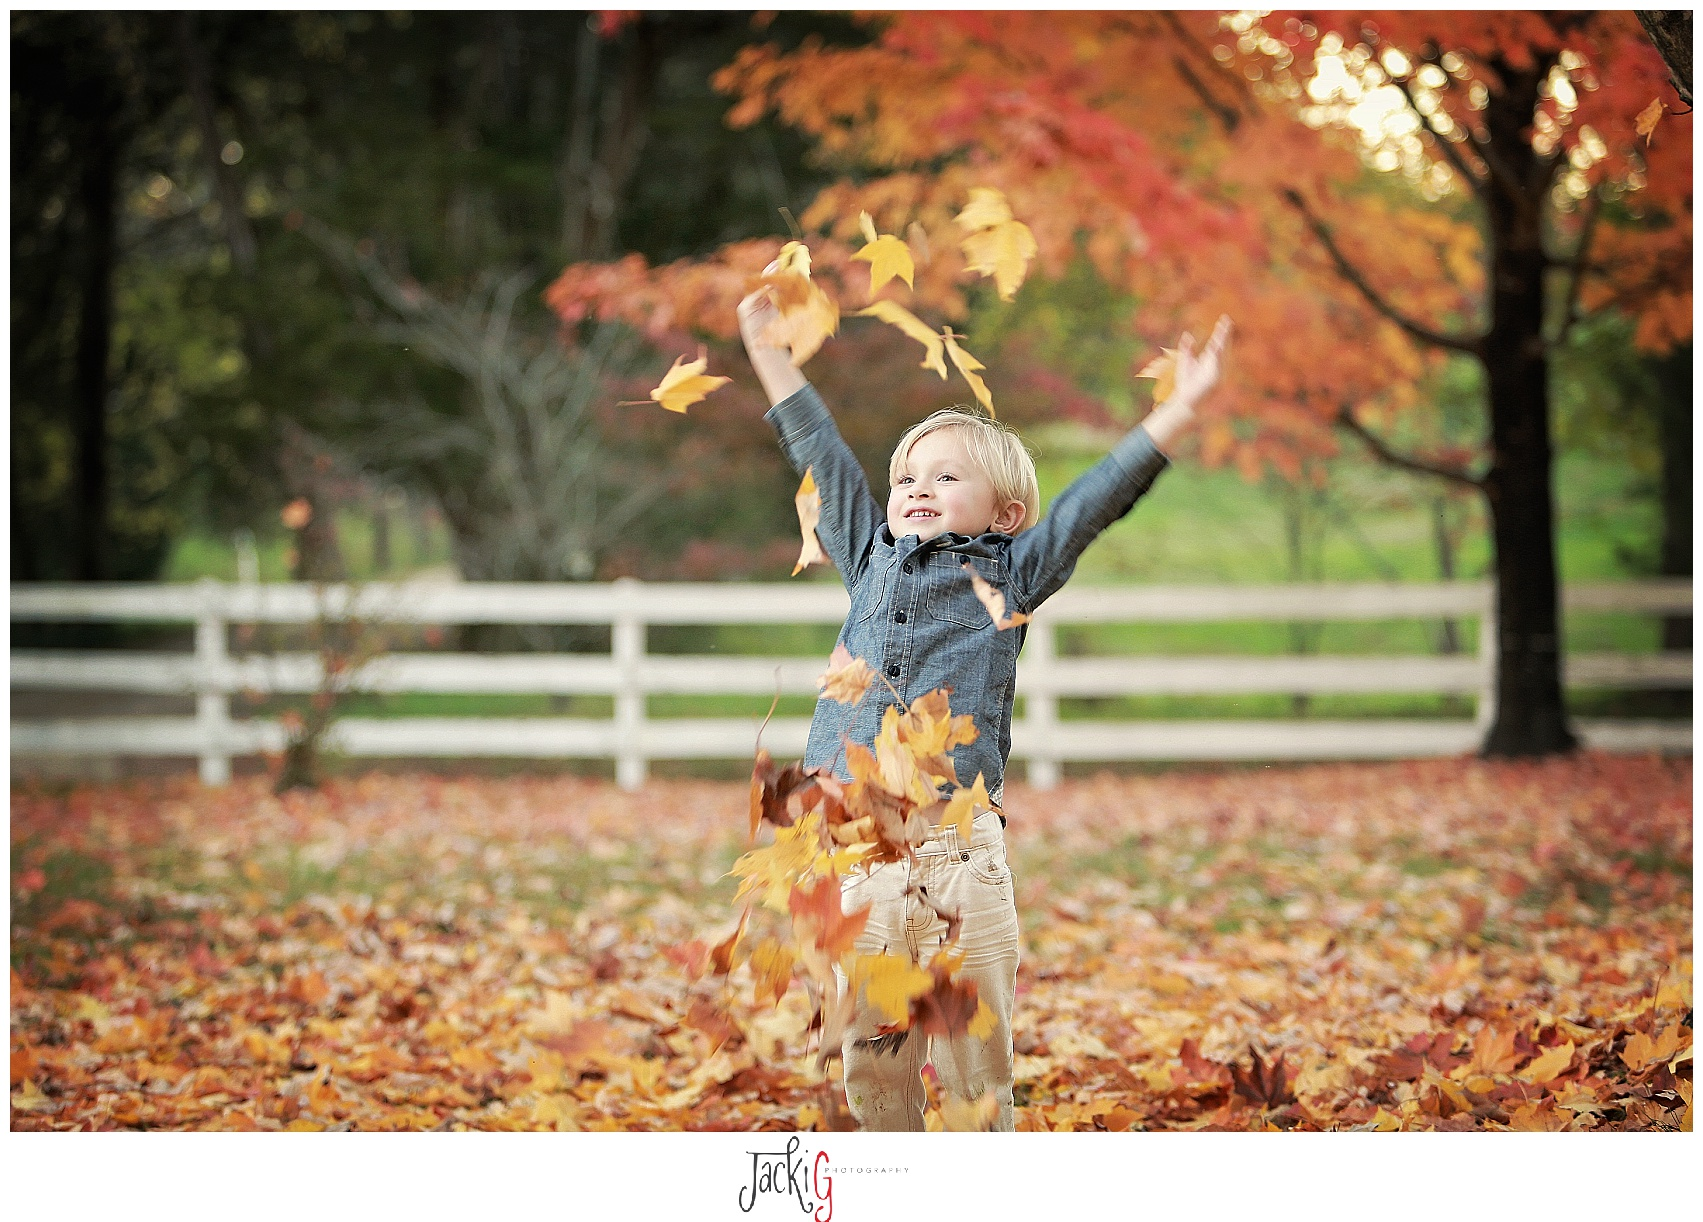 Playing in leaves was so much fun.